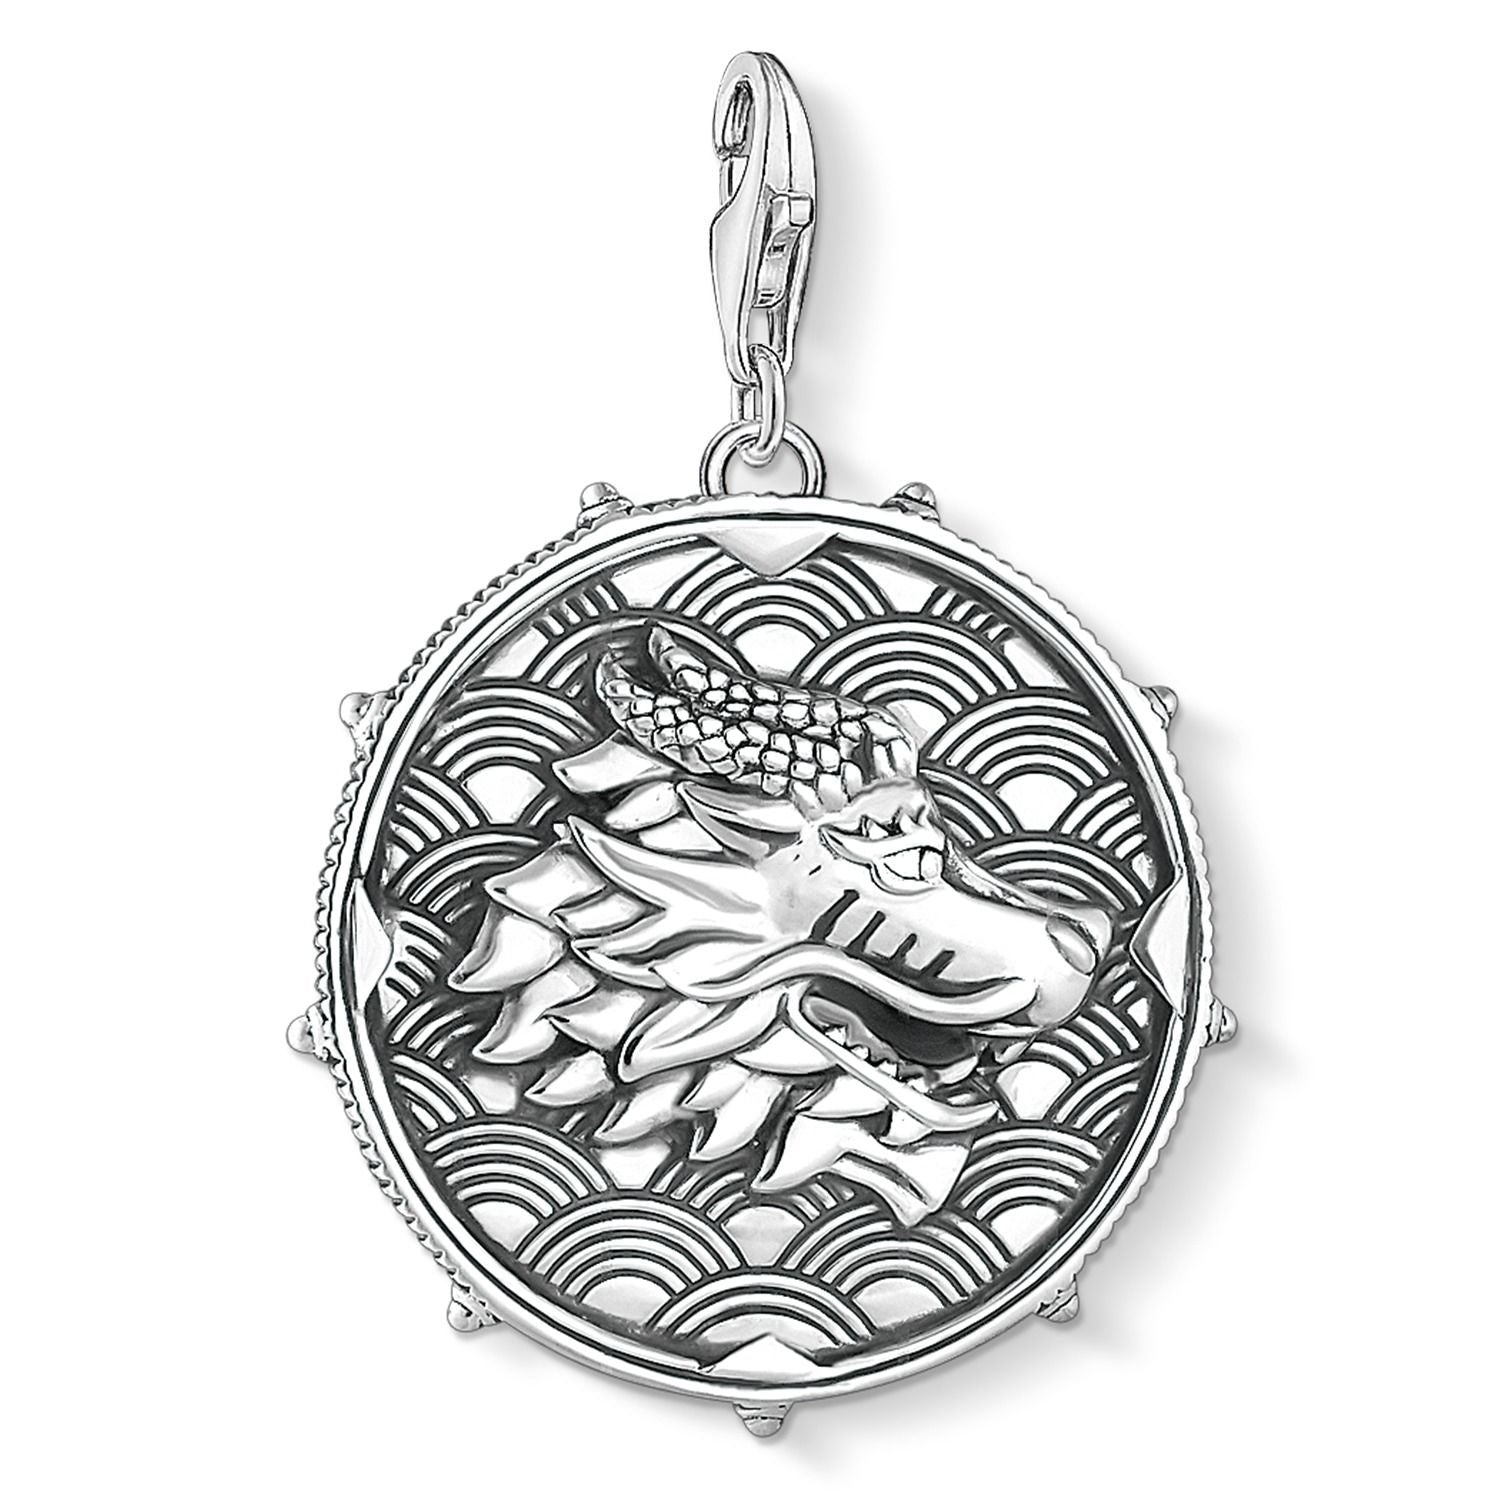 Thomas Sabo Charm Club Disc Dragon & Tiger 1699-637-21